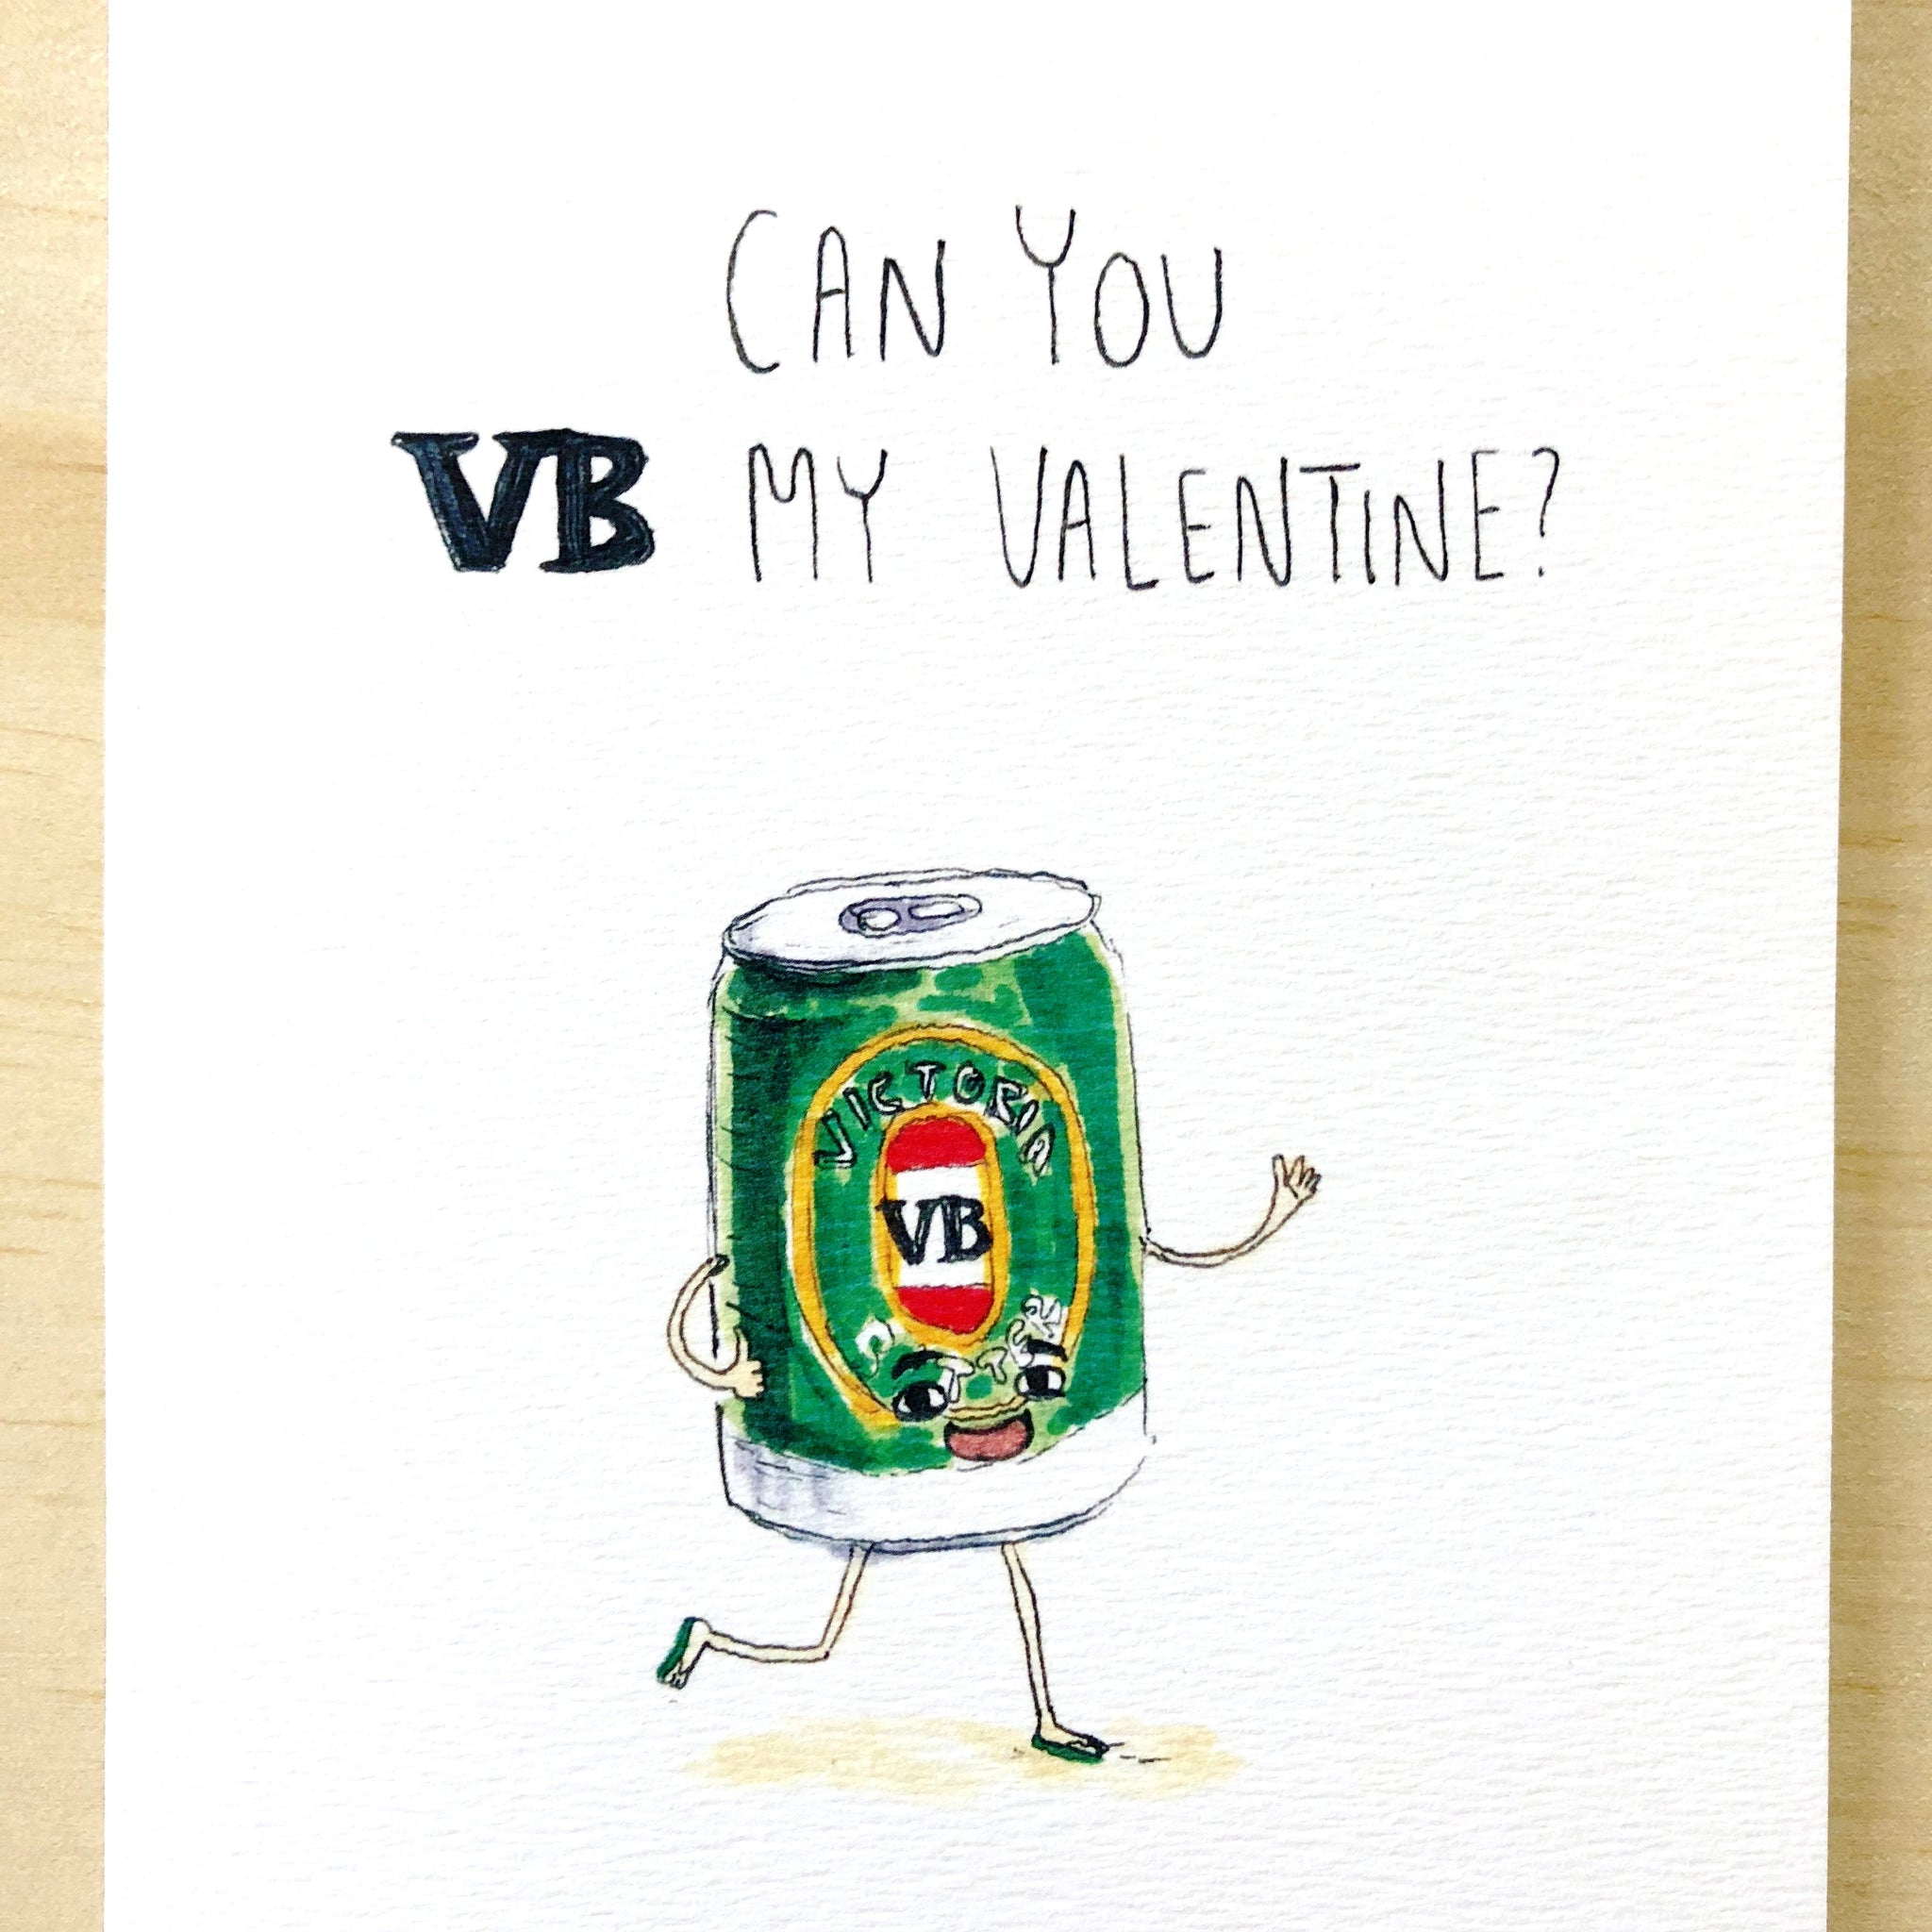 Can You VB My Valentine? - Well Drawn